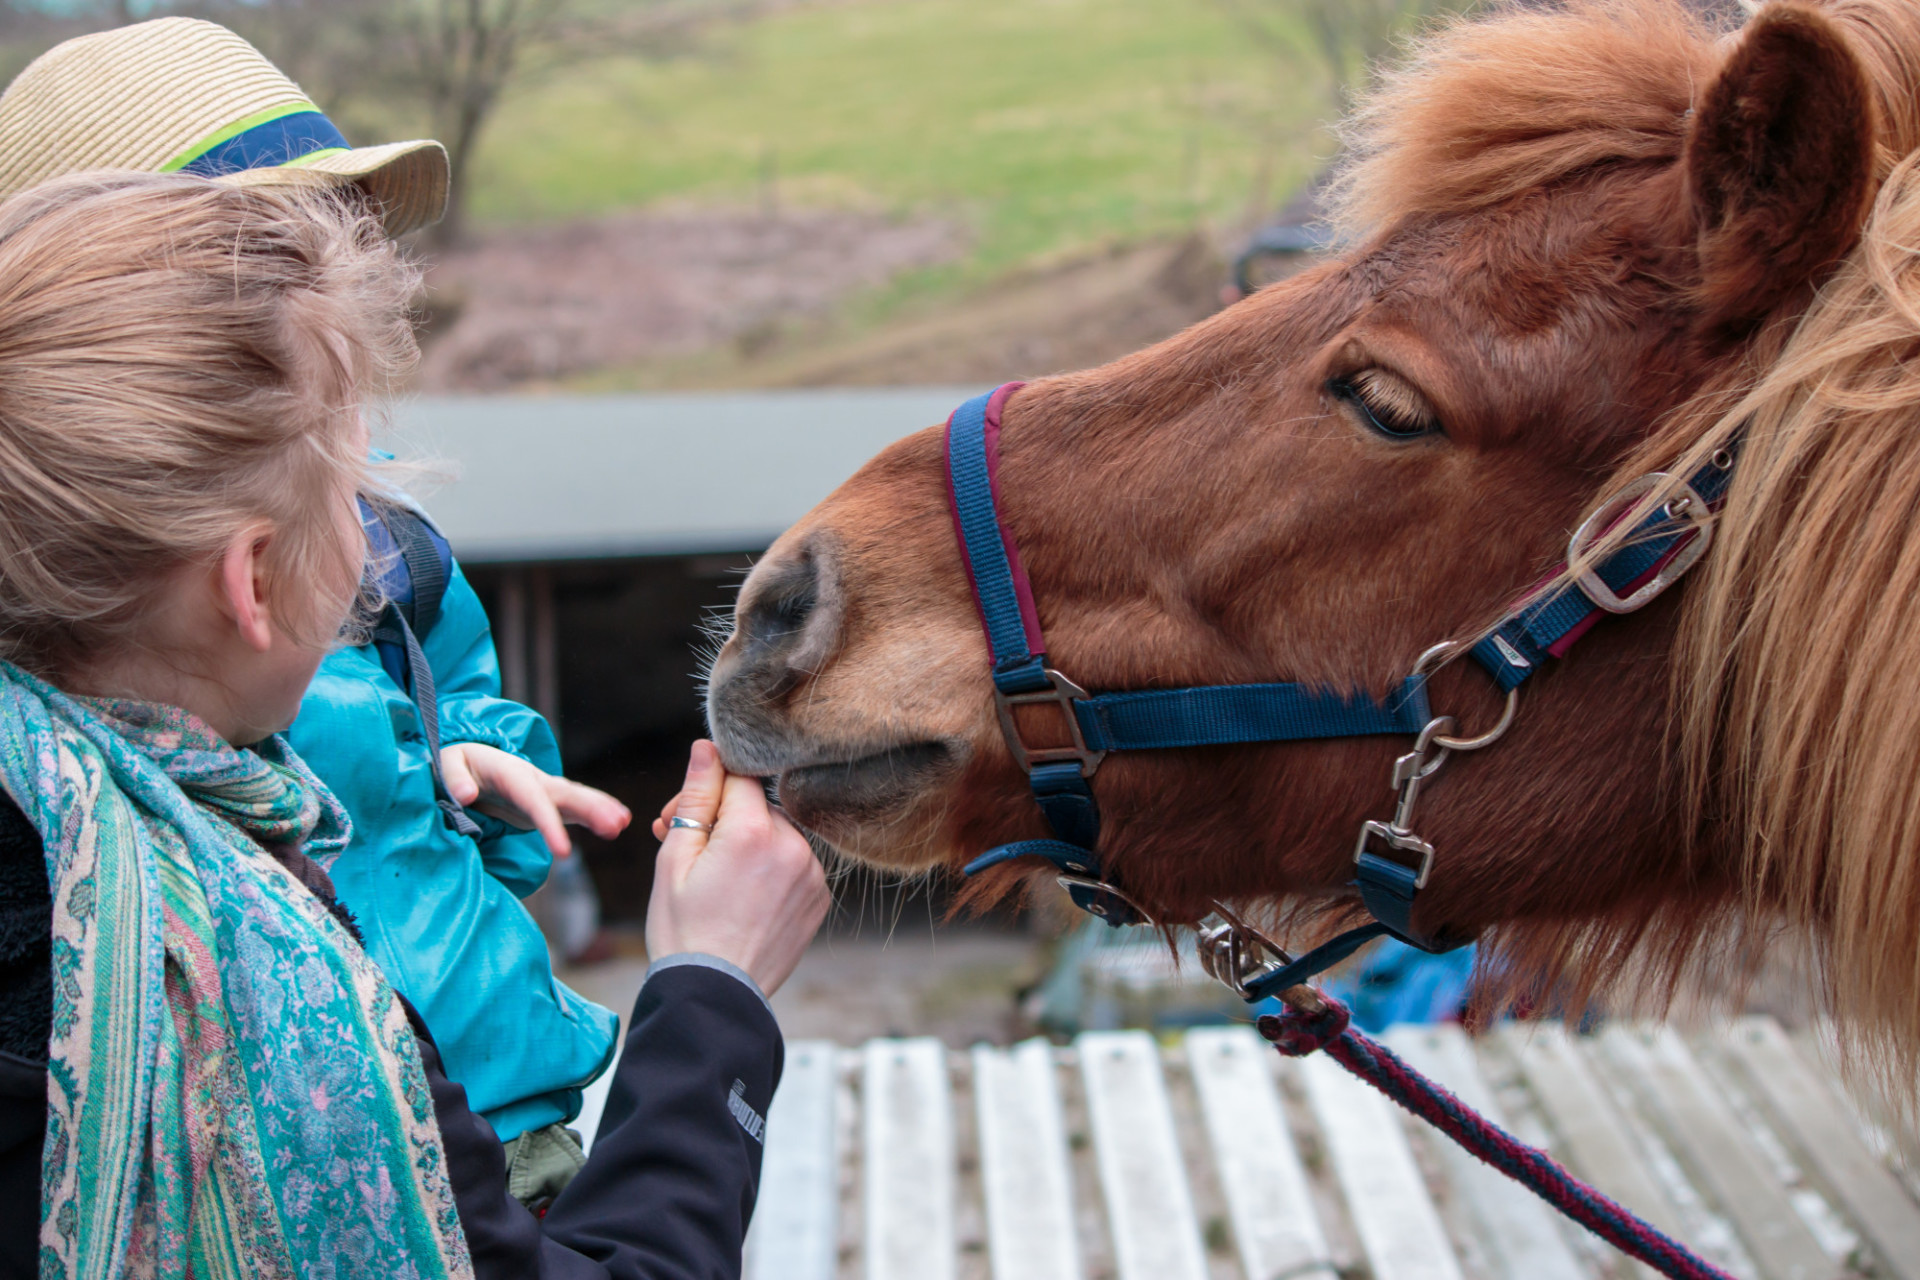 Mother and child stroking a pony